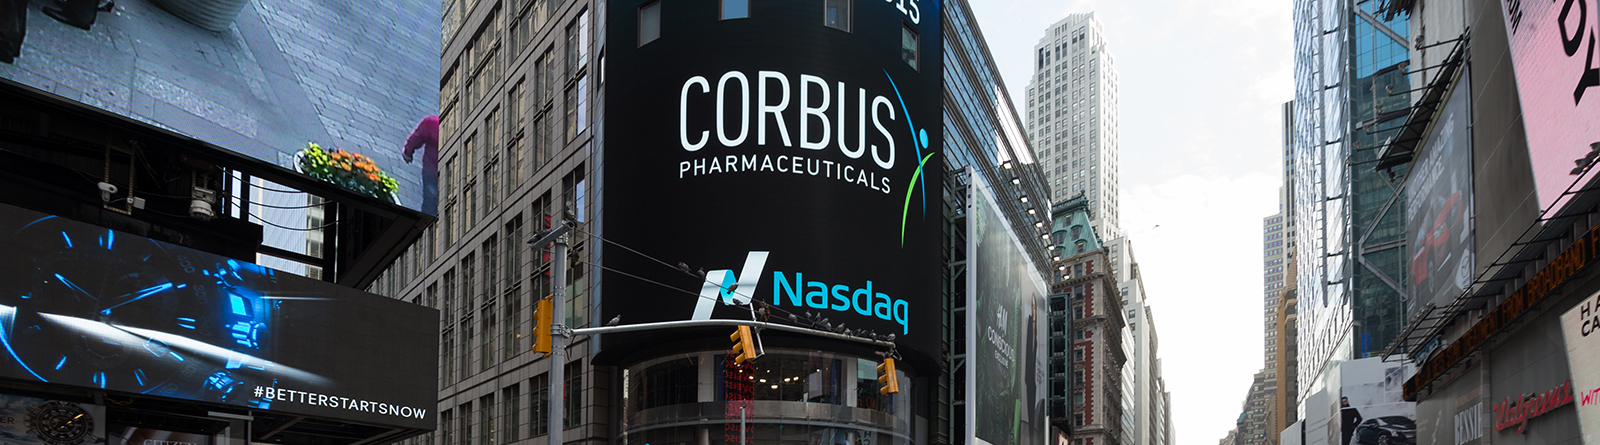 Corbus Pharmaceuticals Presents Lenabasum Long-Term Open-Label Clinical Data Showing Maintenance of Favorable Safety Profile and Further Improvement in Multiple Efficacy Endpoints in Systemic Sclerosis and Dermatomyositis Phase 2 Studies Banner